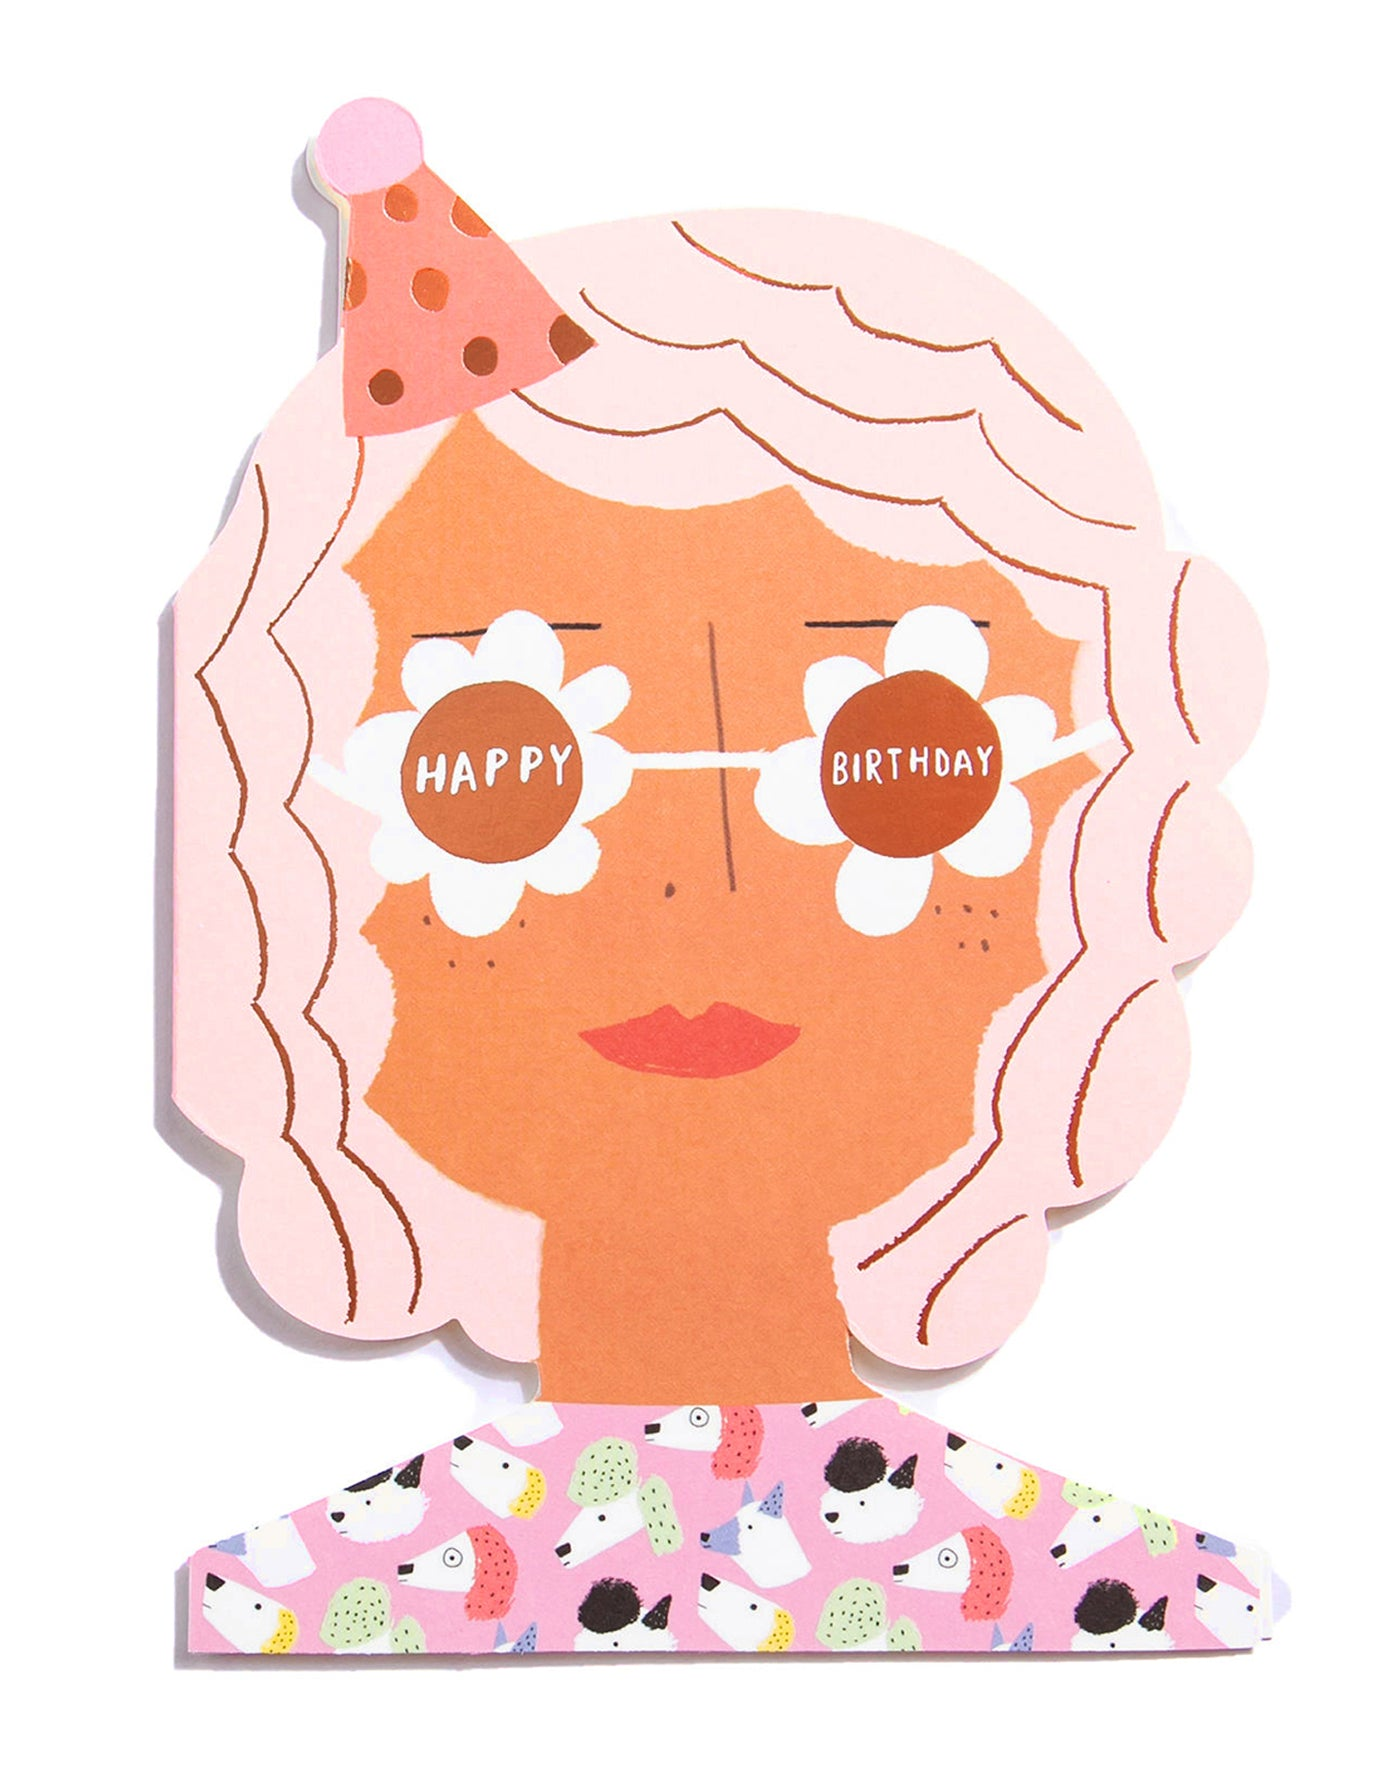 PARTY GIRL - Shaped Birthday Card